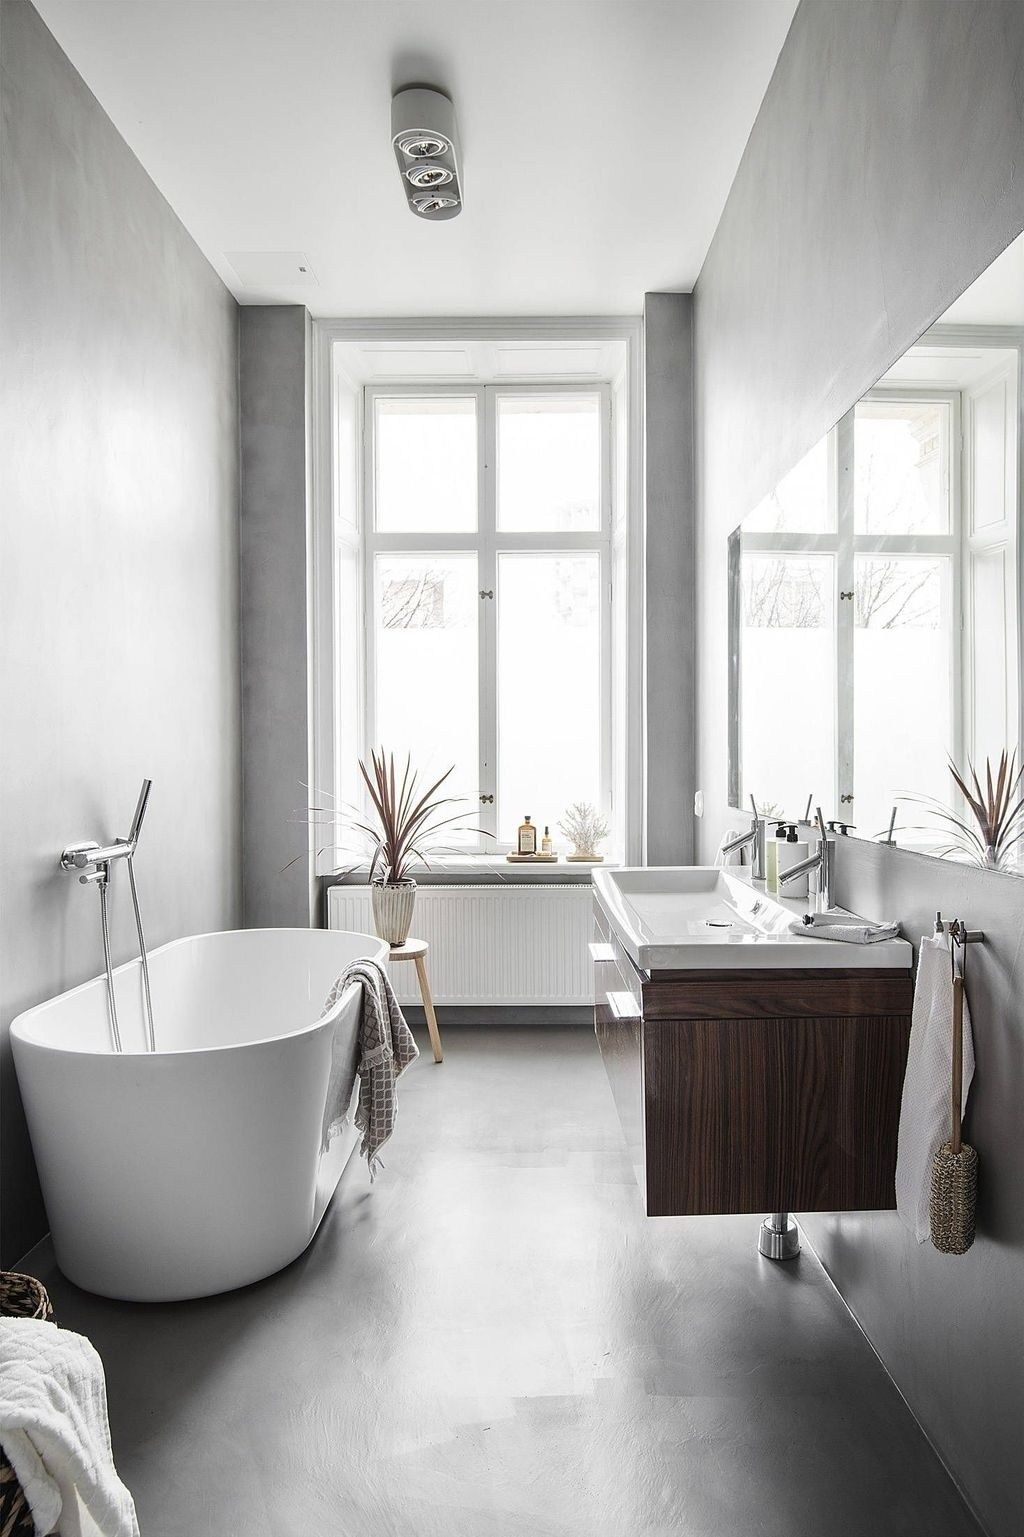 20 Popular Scandinavian Bathroom Ideas Scandinavian Bathroom Small Bathroom Decor Small Bathroom Trends